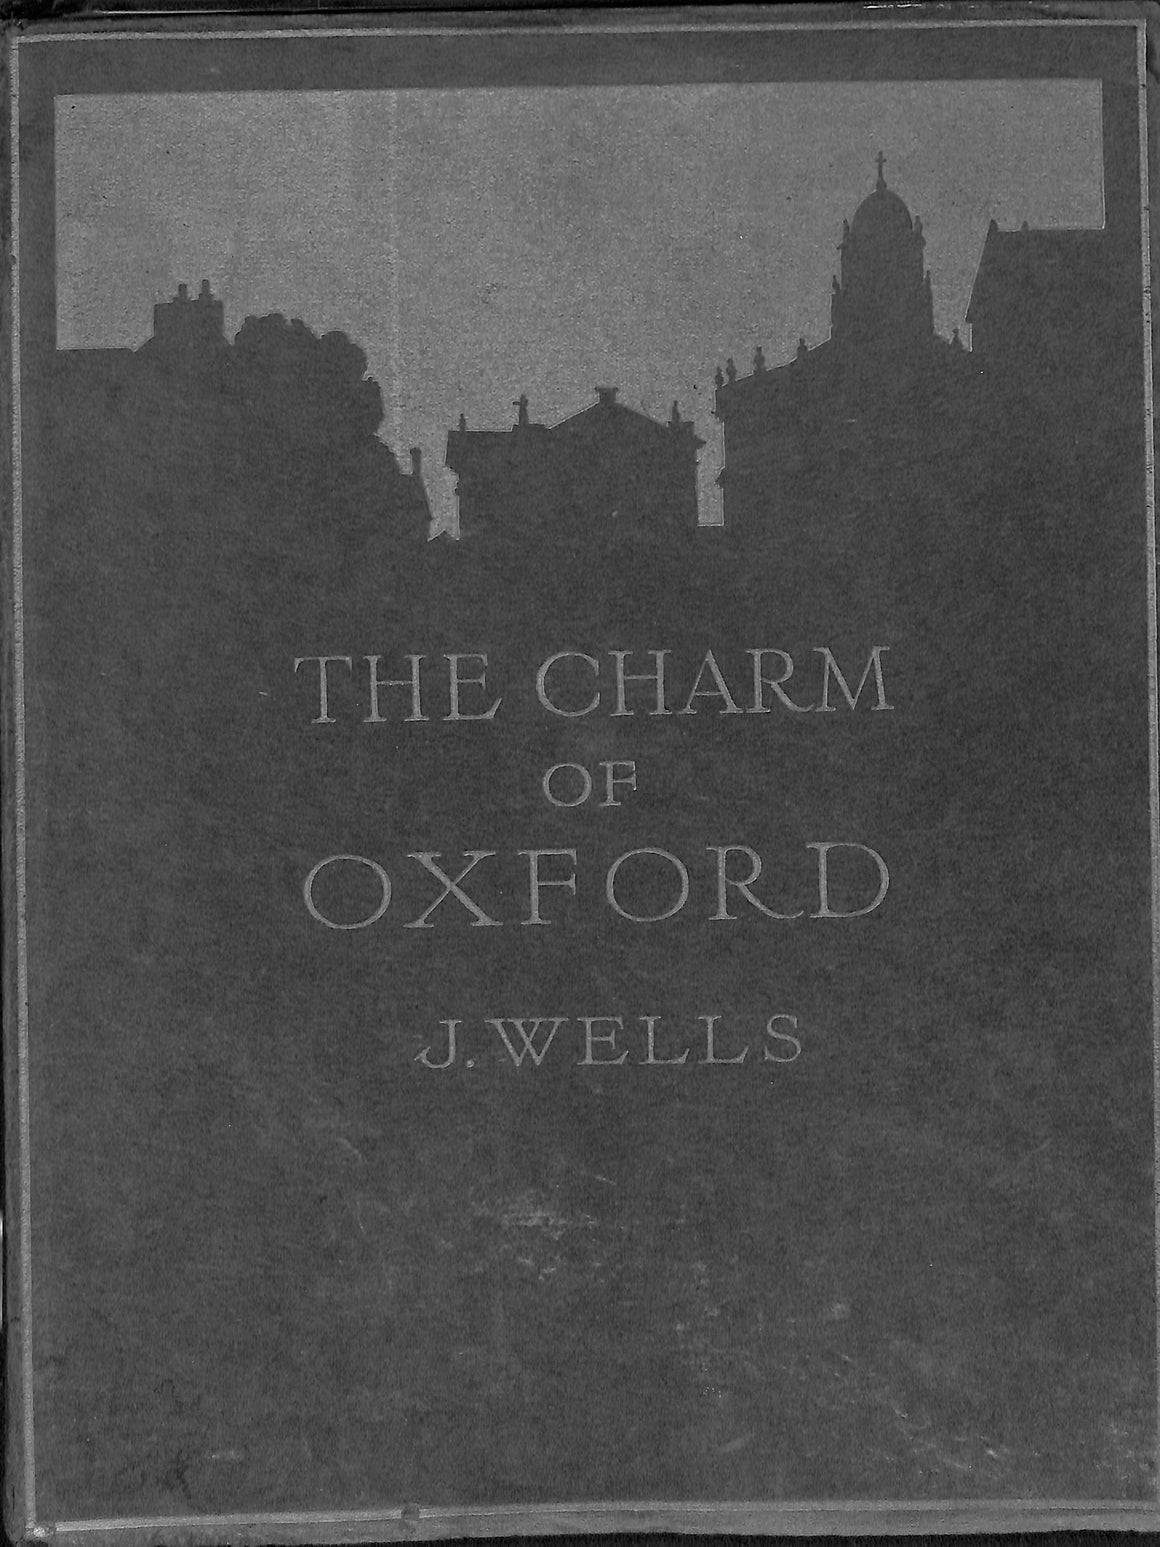 The Charm of Oxford by J. Wells